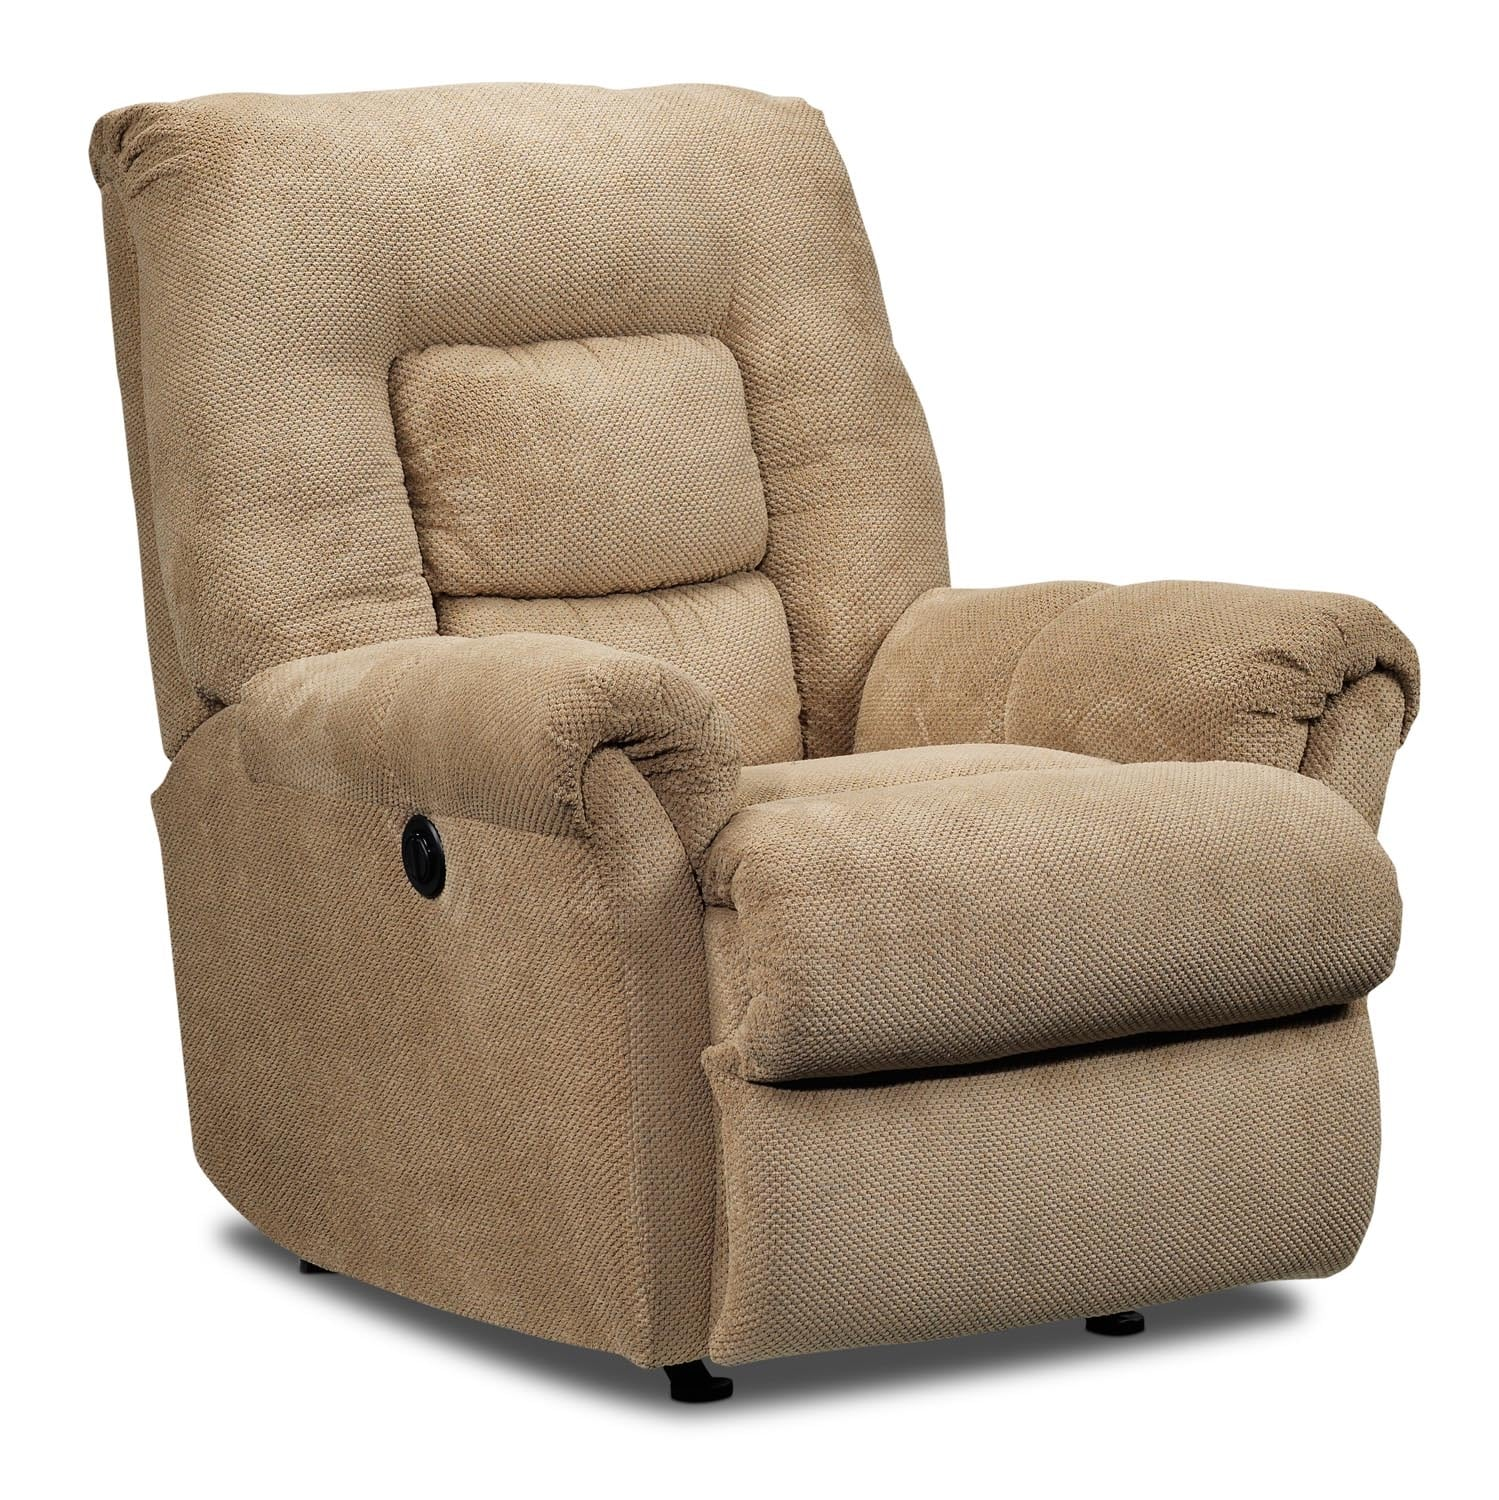 [Schmidt Power Recliner - Tan]